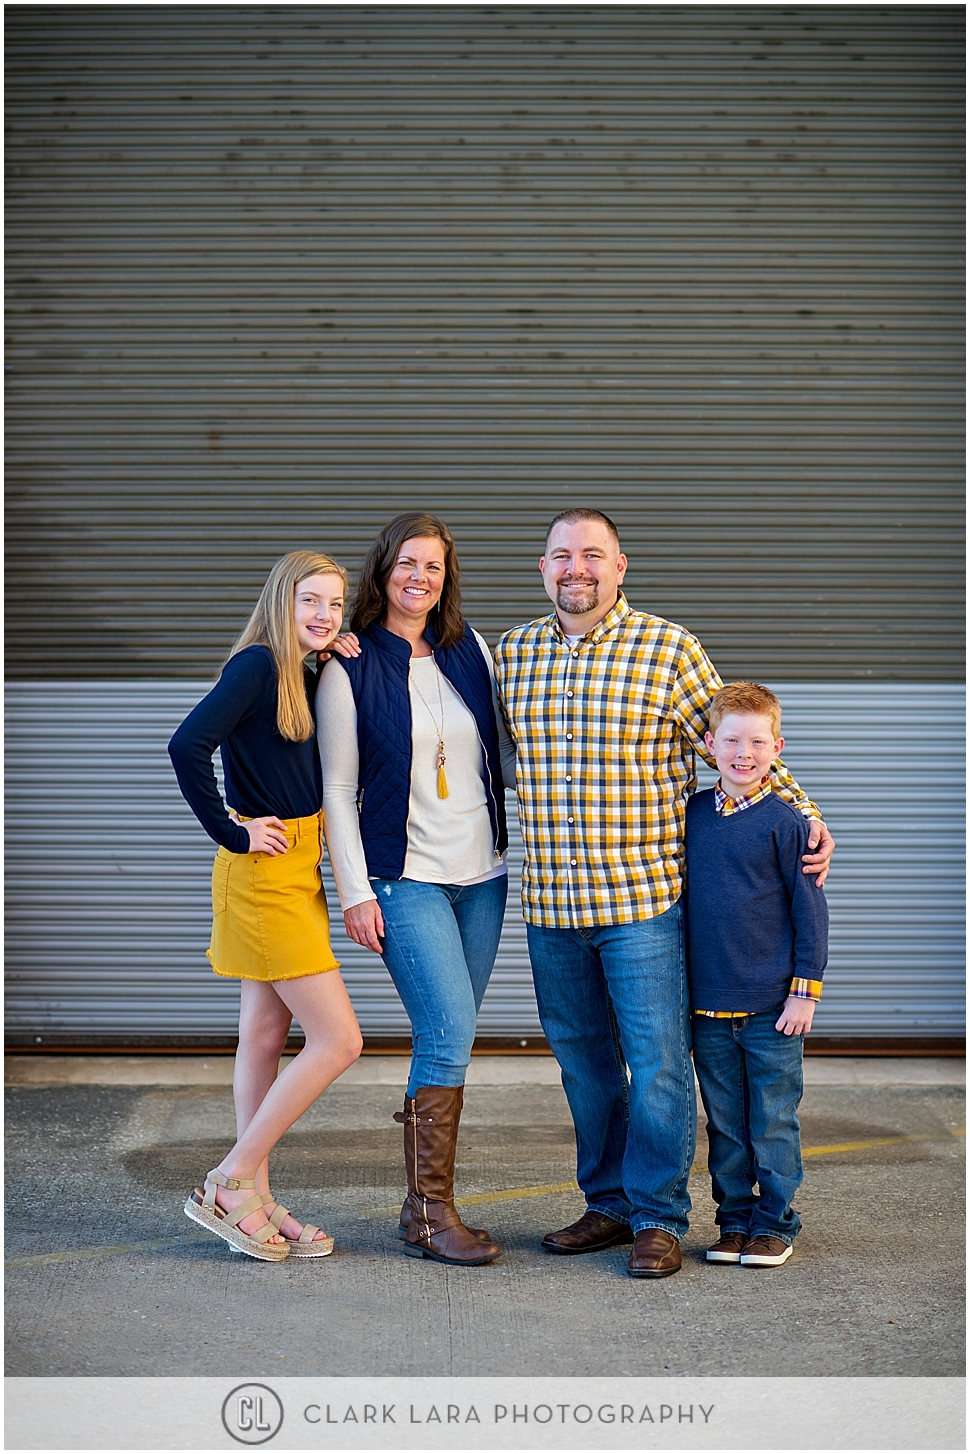 conroe-family-photo-thomasson_0010.jpg